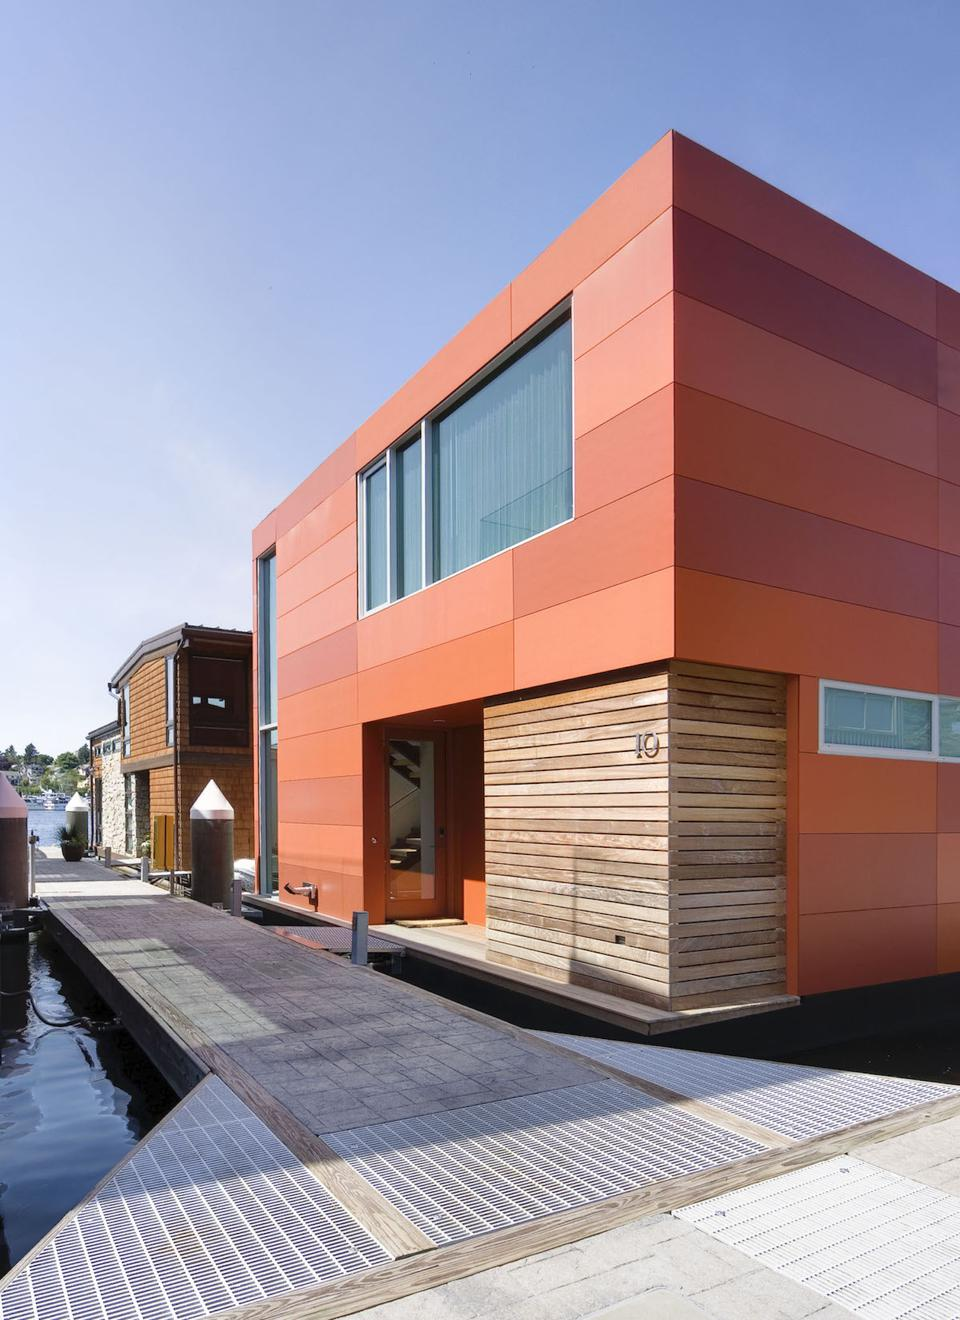 This is a floating home, designed by E. Cobb Architects, on Lake Union Washington.